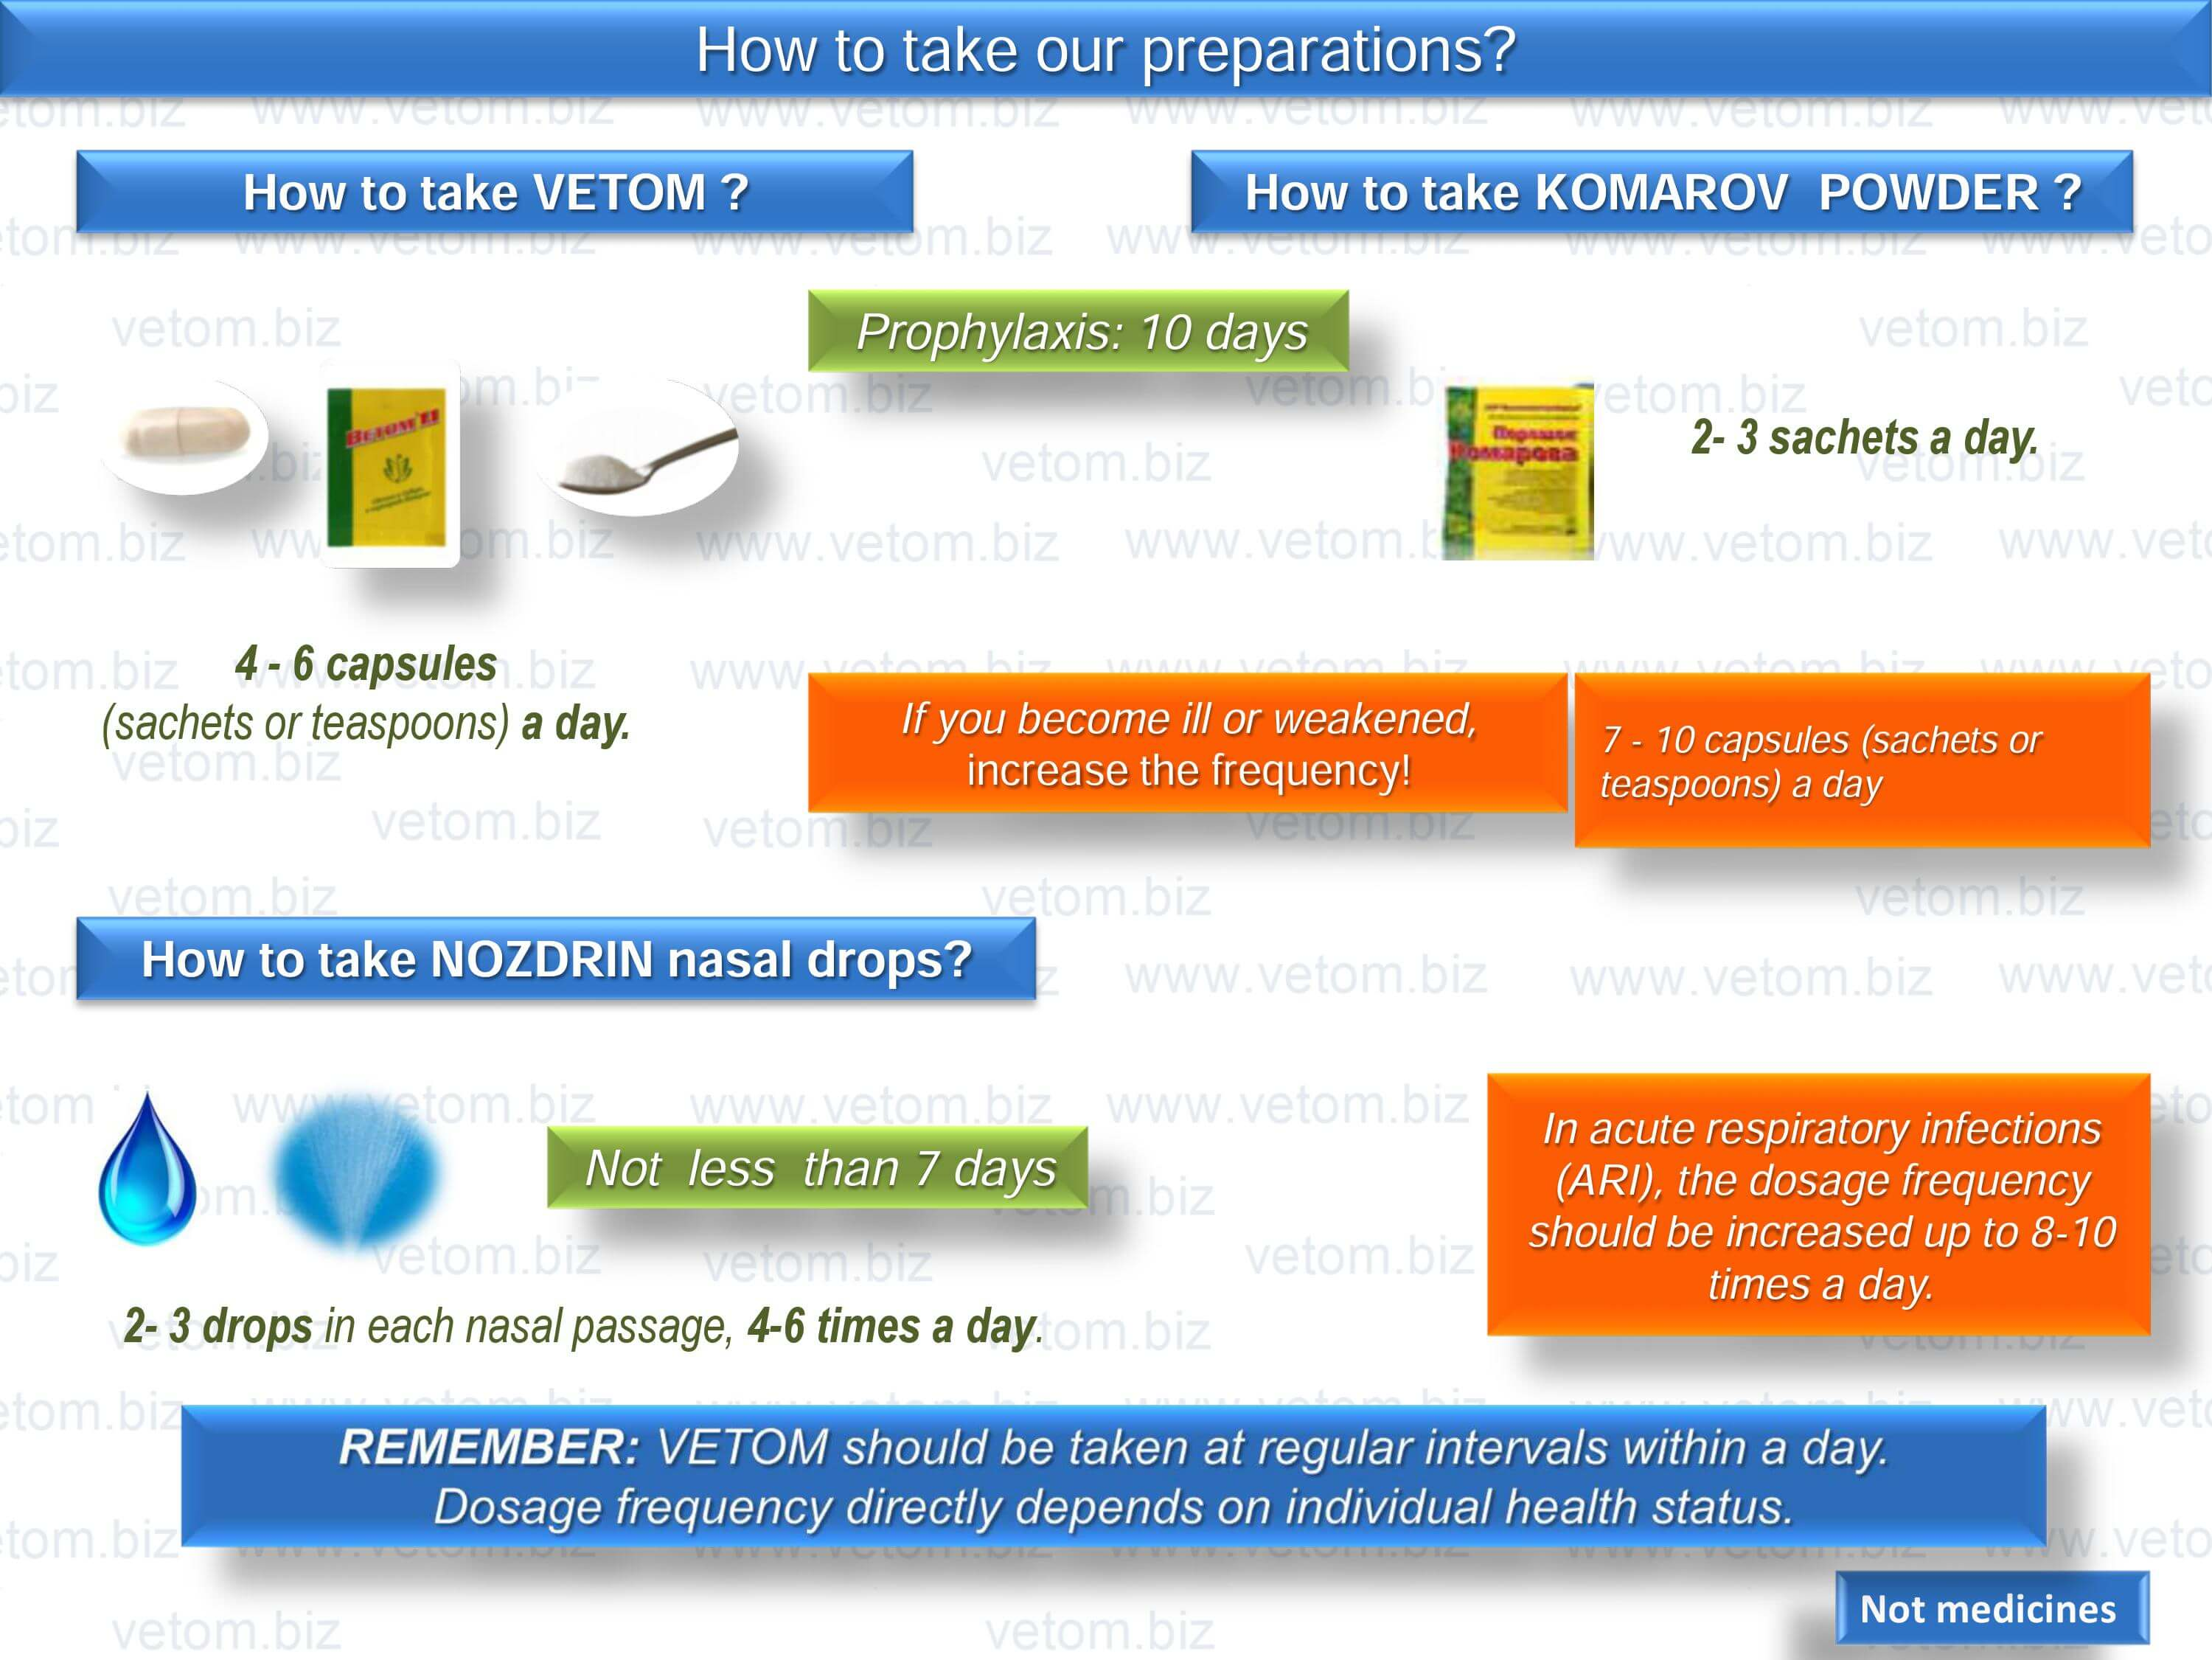 How to take Vetom? How to take Komarov powder? How to take Nozdrin nasal drops?